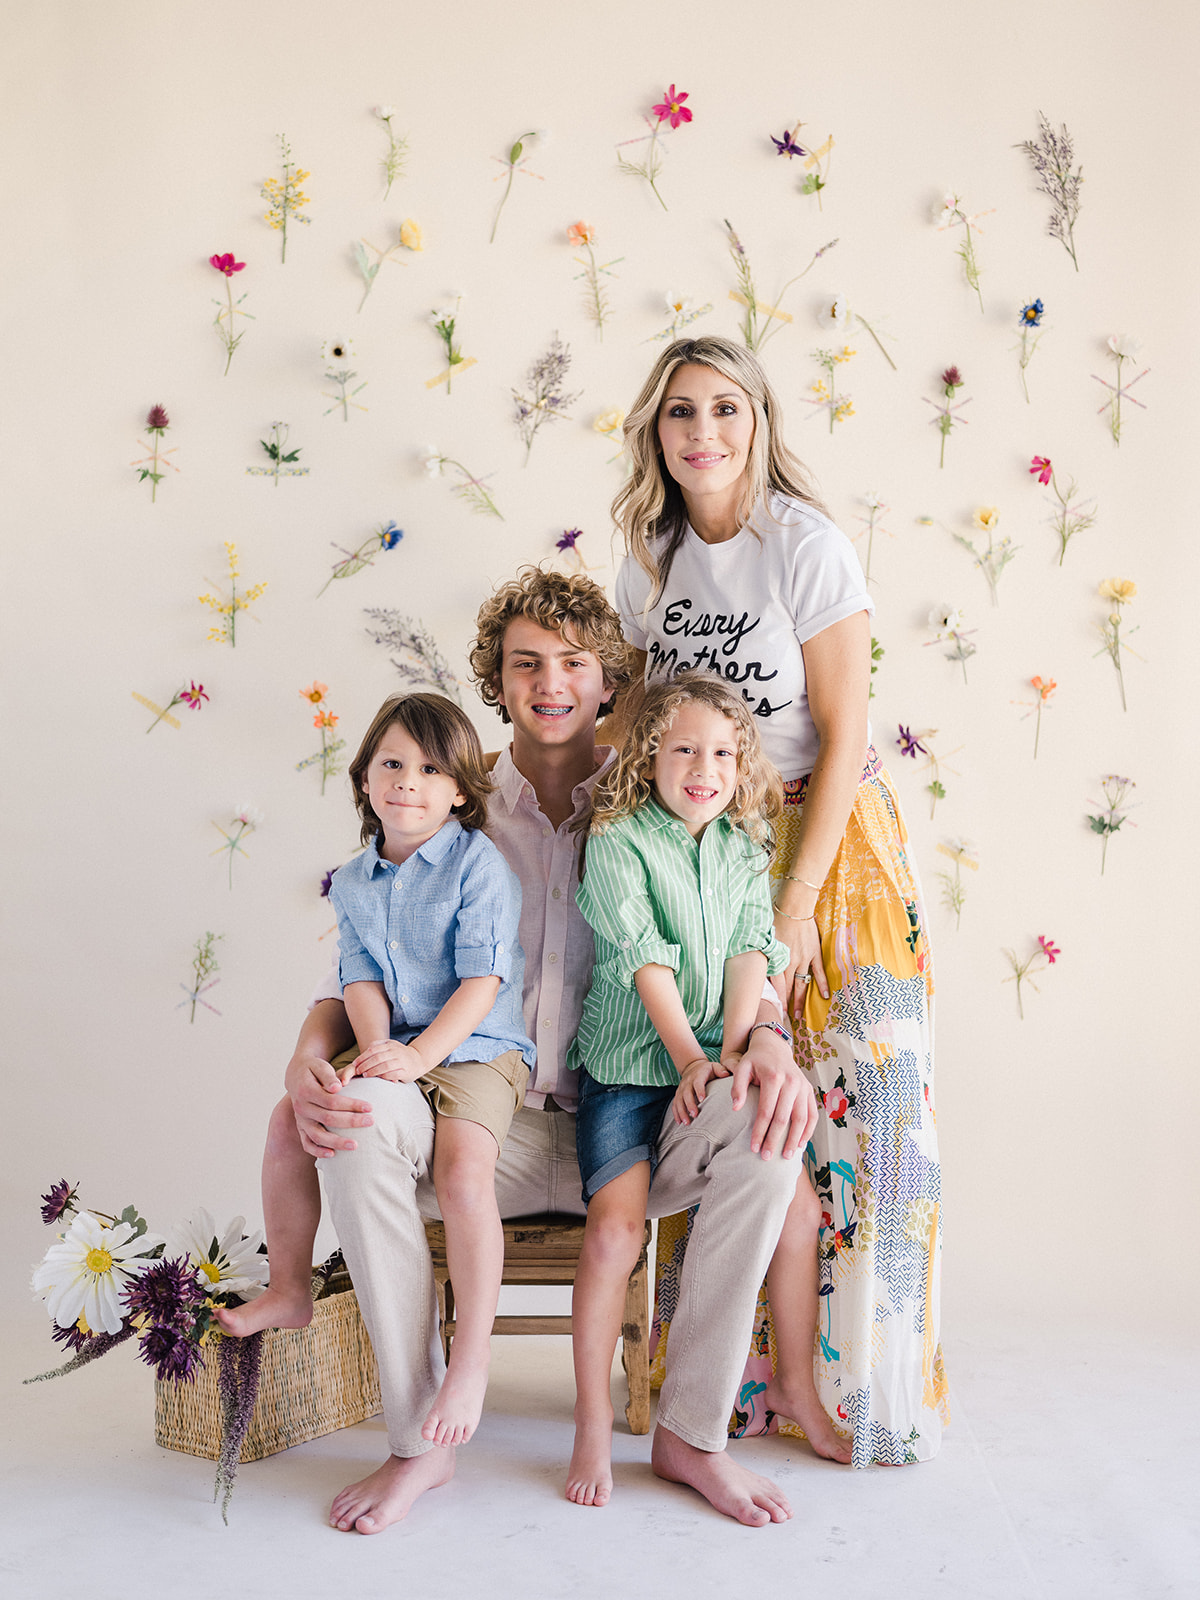 How to color coordinated clothing for family portraits